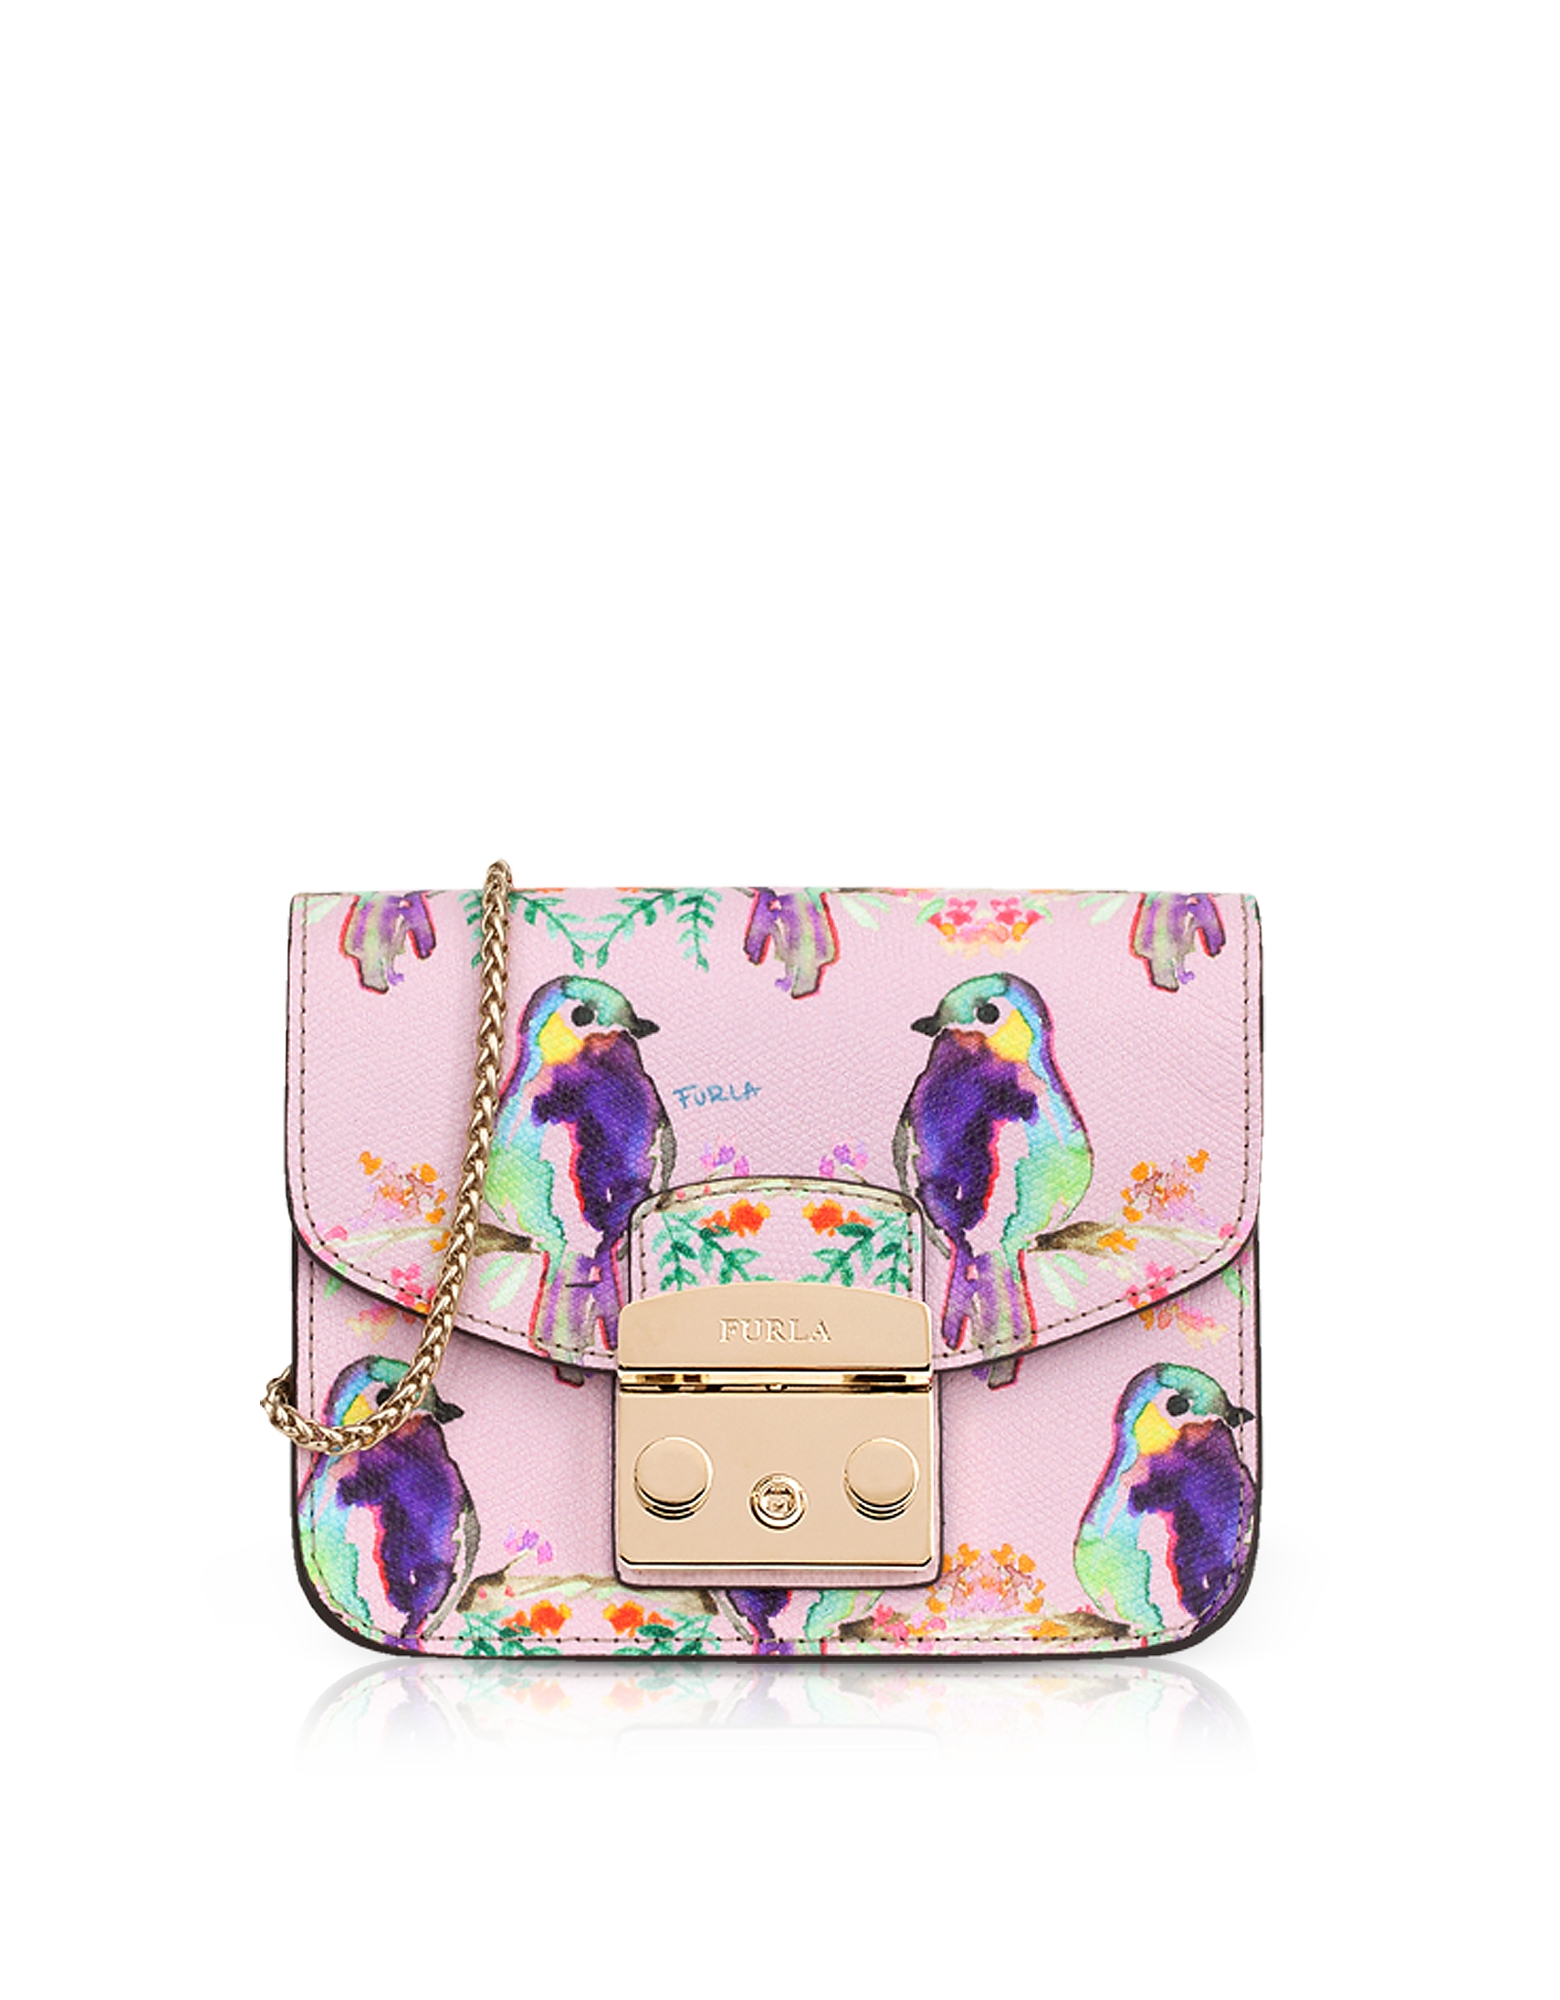 Cardellino Printed Camelia Leather Metropolis Mini Crossbody Bag